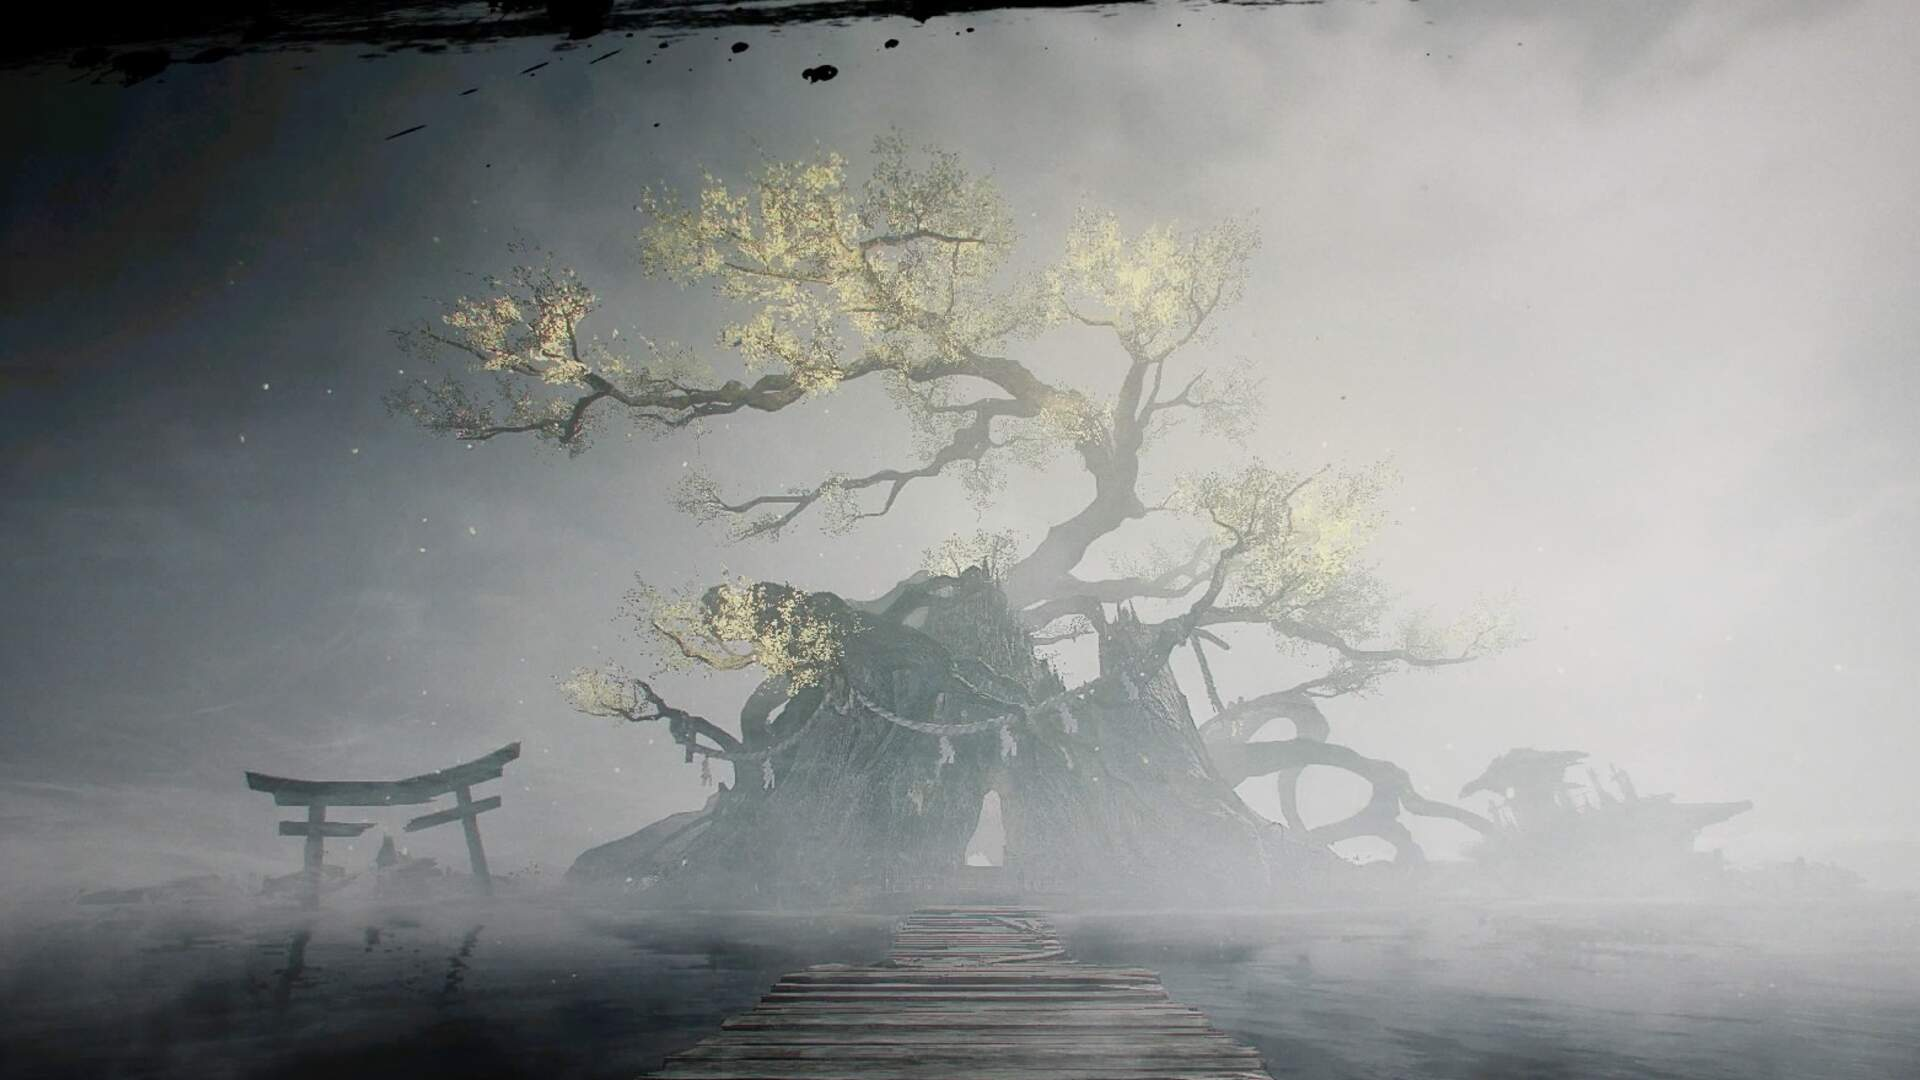 Nioh 2 Gets New Missions Today, New Difficulty Levels Later This Year